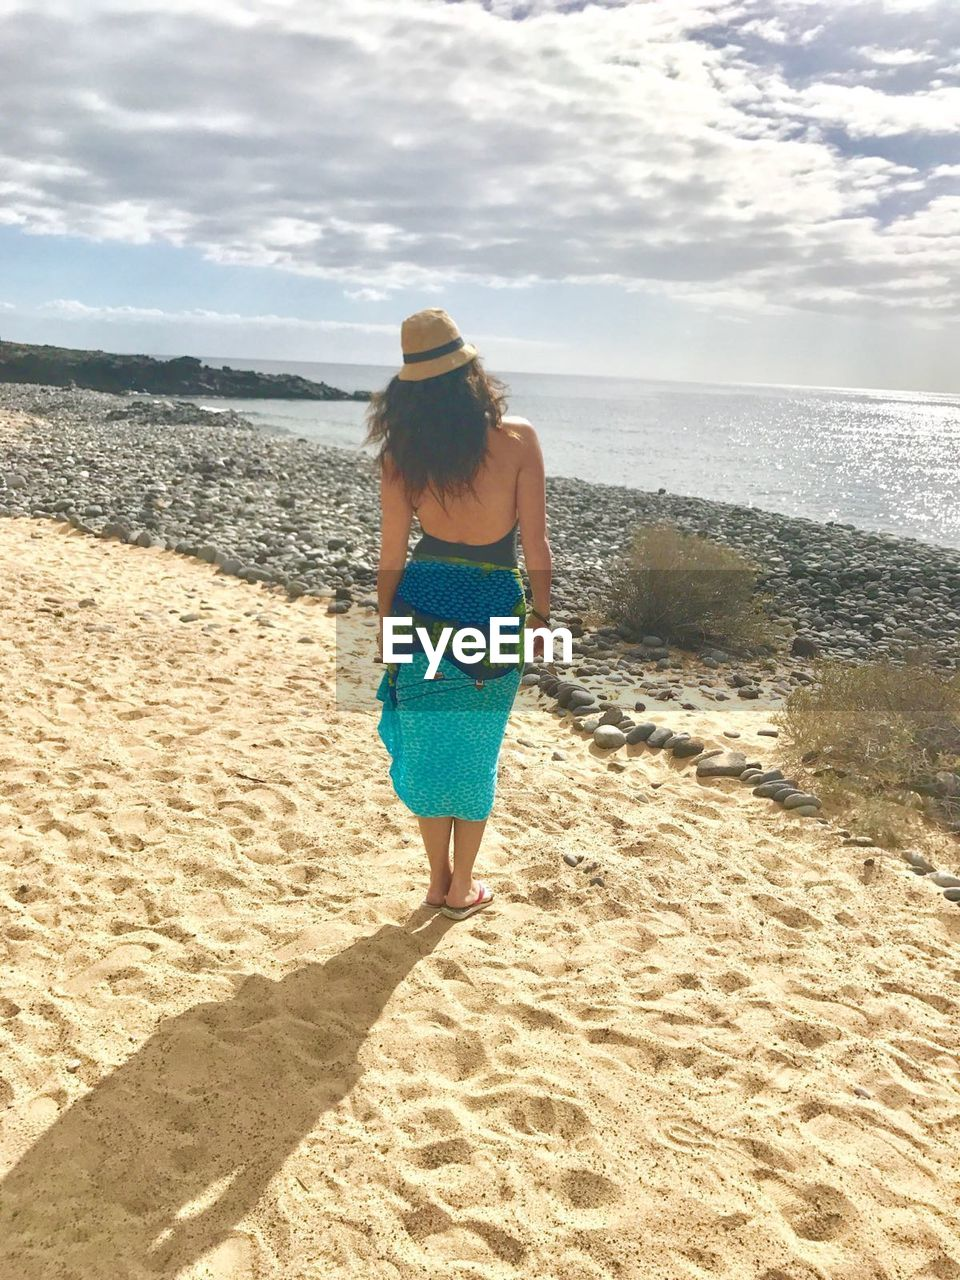 rear view, beach, sea, sand, full length, one person, real people, sky, nature, walking, leisure activity, horizon over water, sunlight, day, scenics, standing, water, lifestyles, vacations, women, beauty in nature, outdoors, adult, people